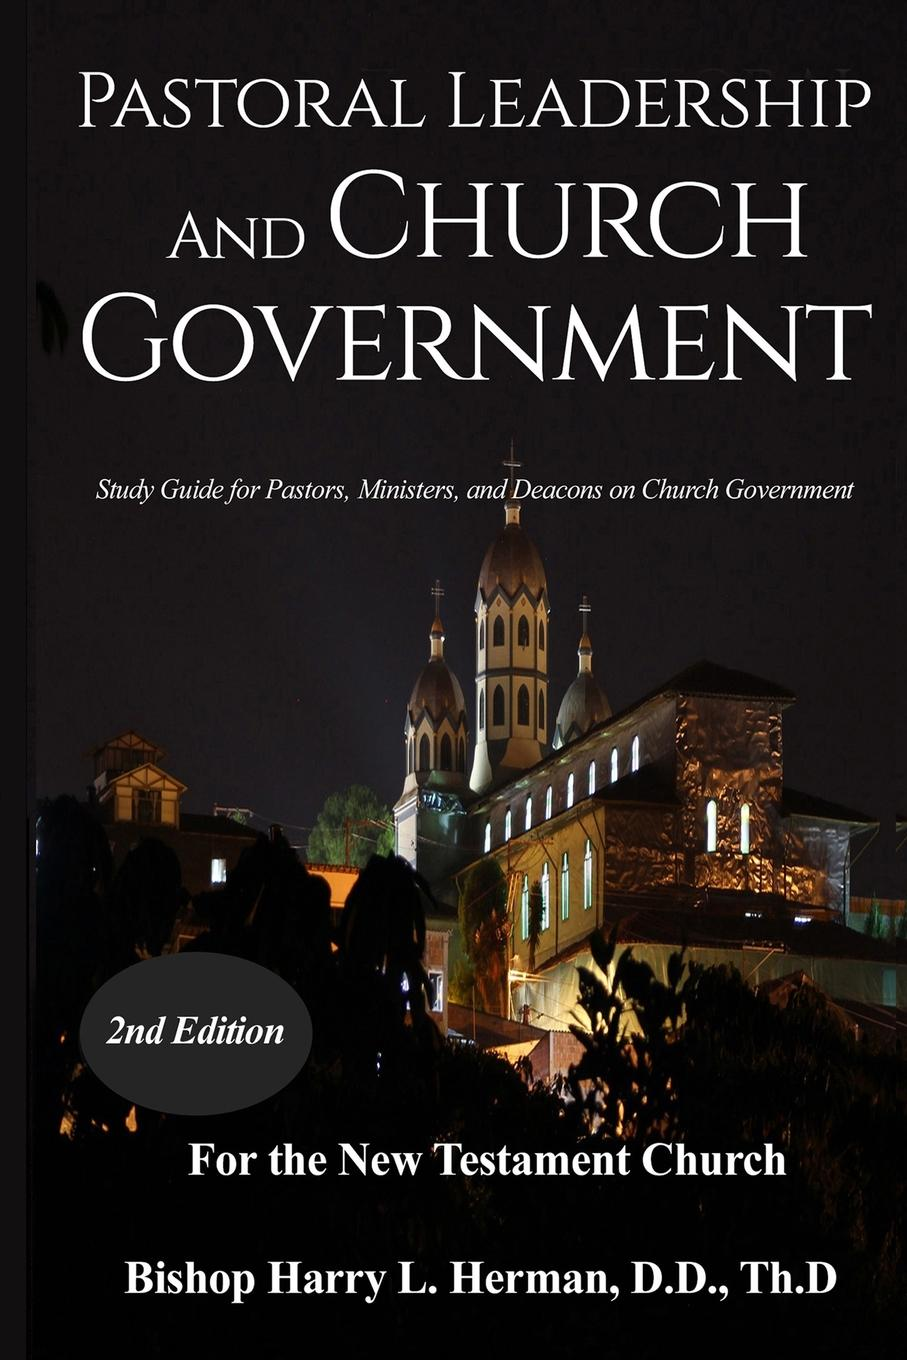 Harry L. Herman PASTORAL LEADERSHIP AND CHURCH GOVERNMENT. Study Guide for Pastors, Ministers, and Deacons on Church Government For the New Testament Church mack smalley jr the crown the church the first the last revelation a study guide